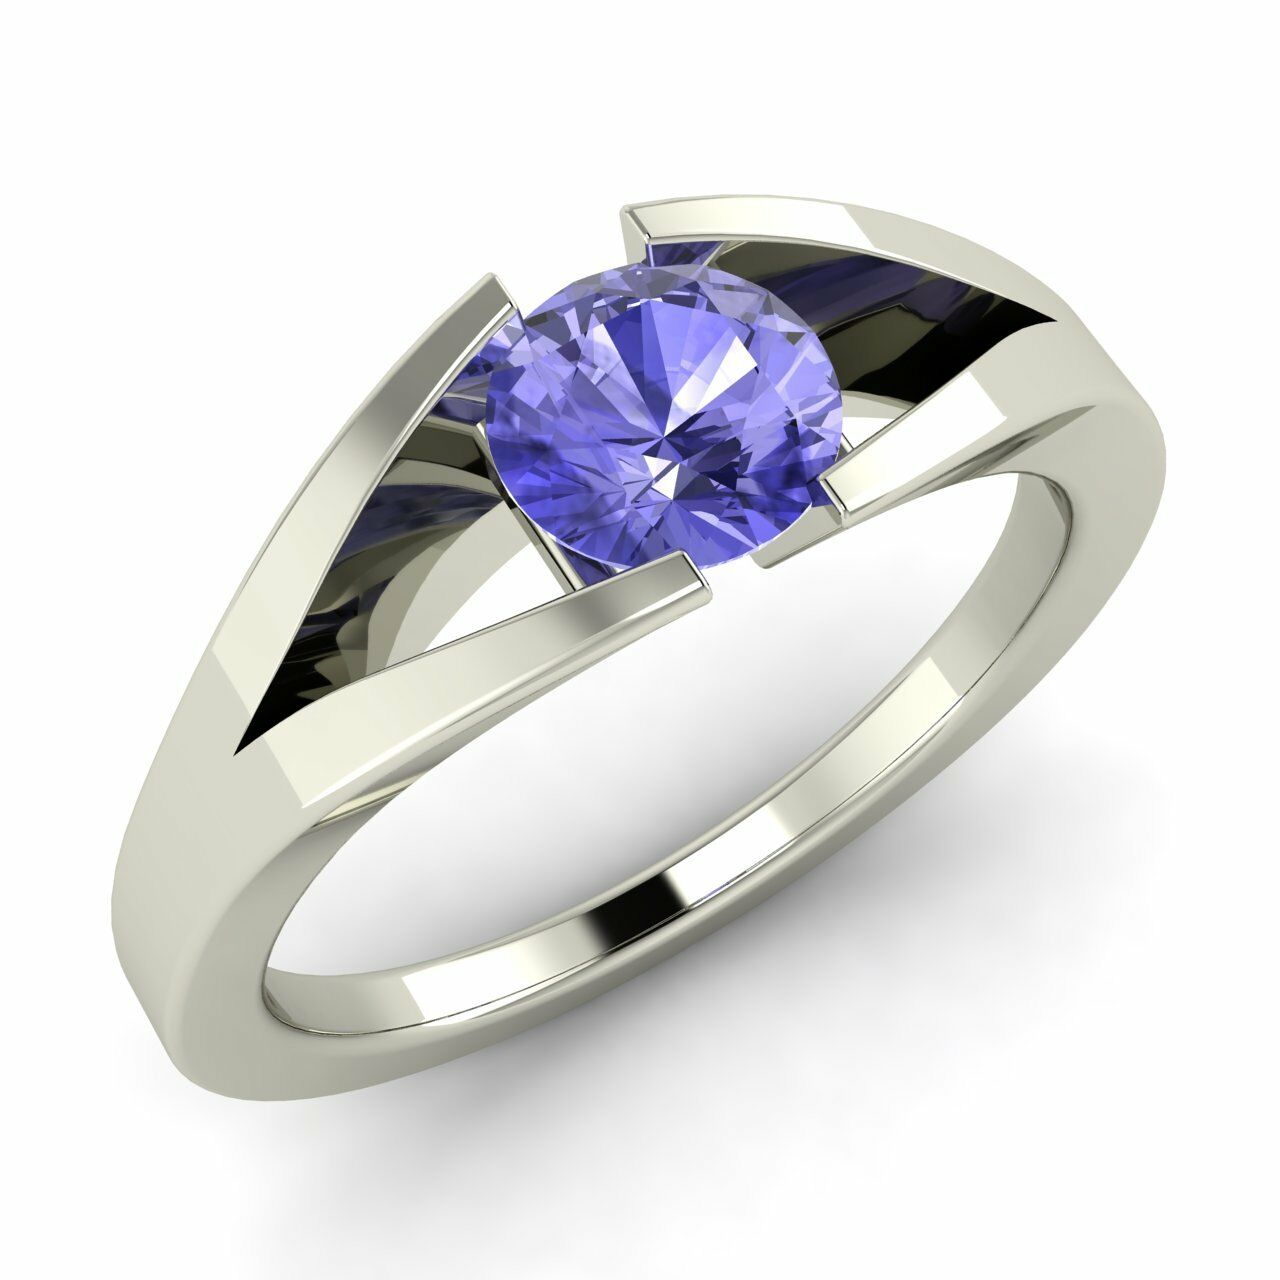 Certified 0.35 Cts Natural Tanzanite 14k White gold Solitaire Engagement Ring